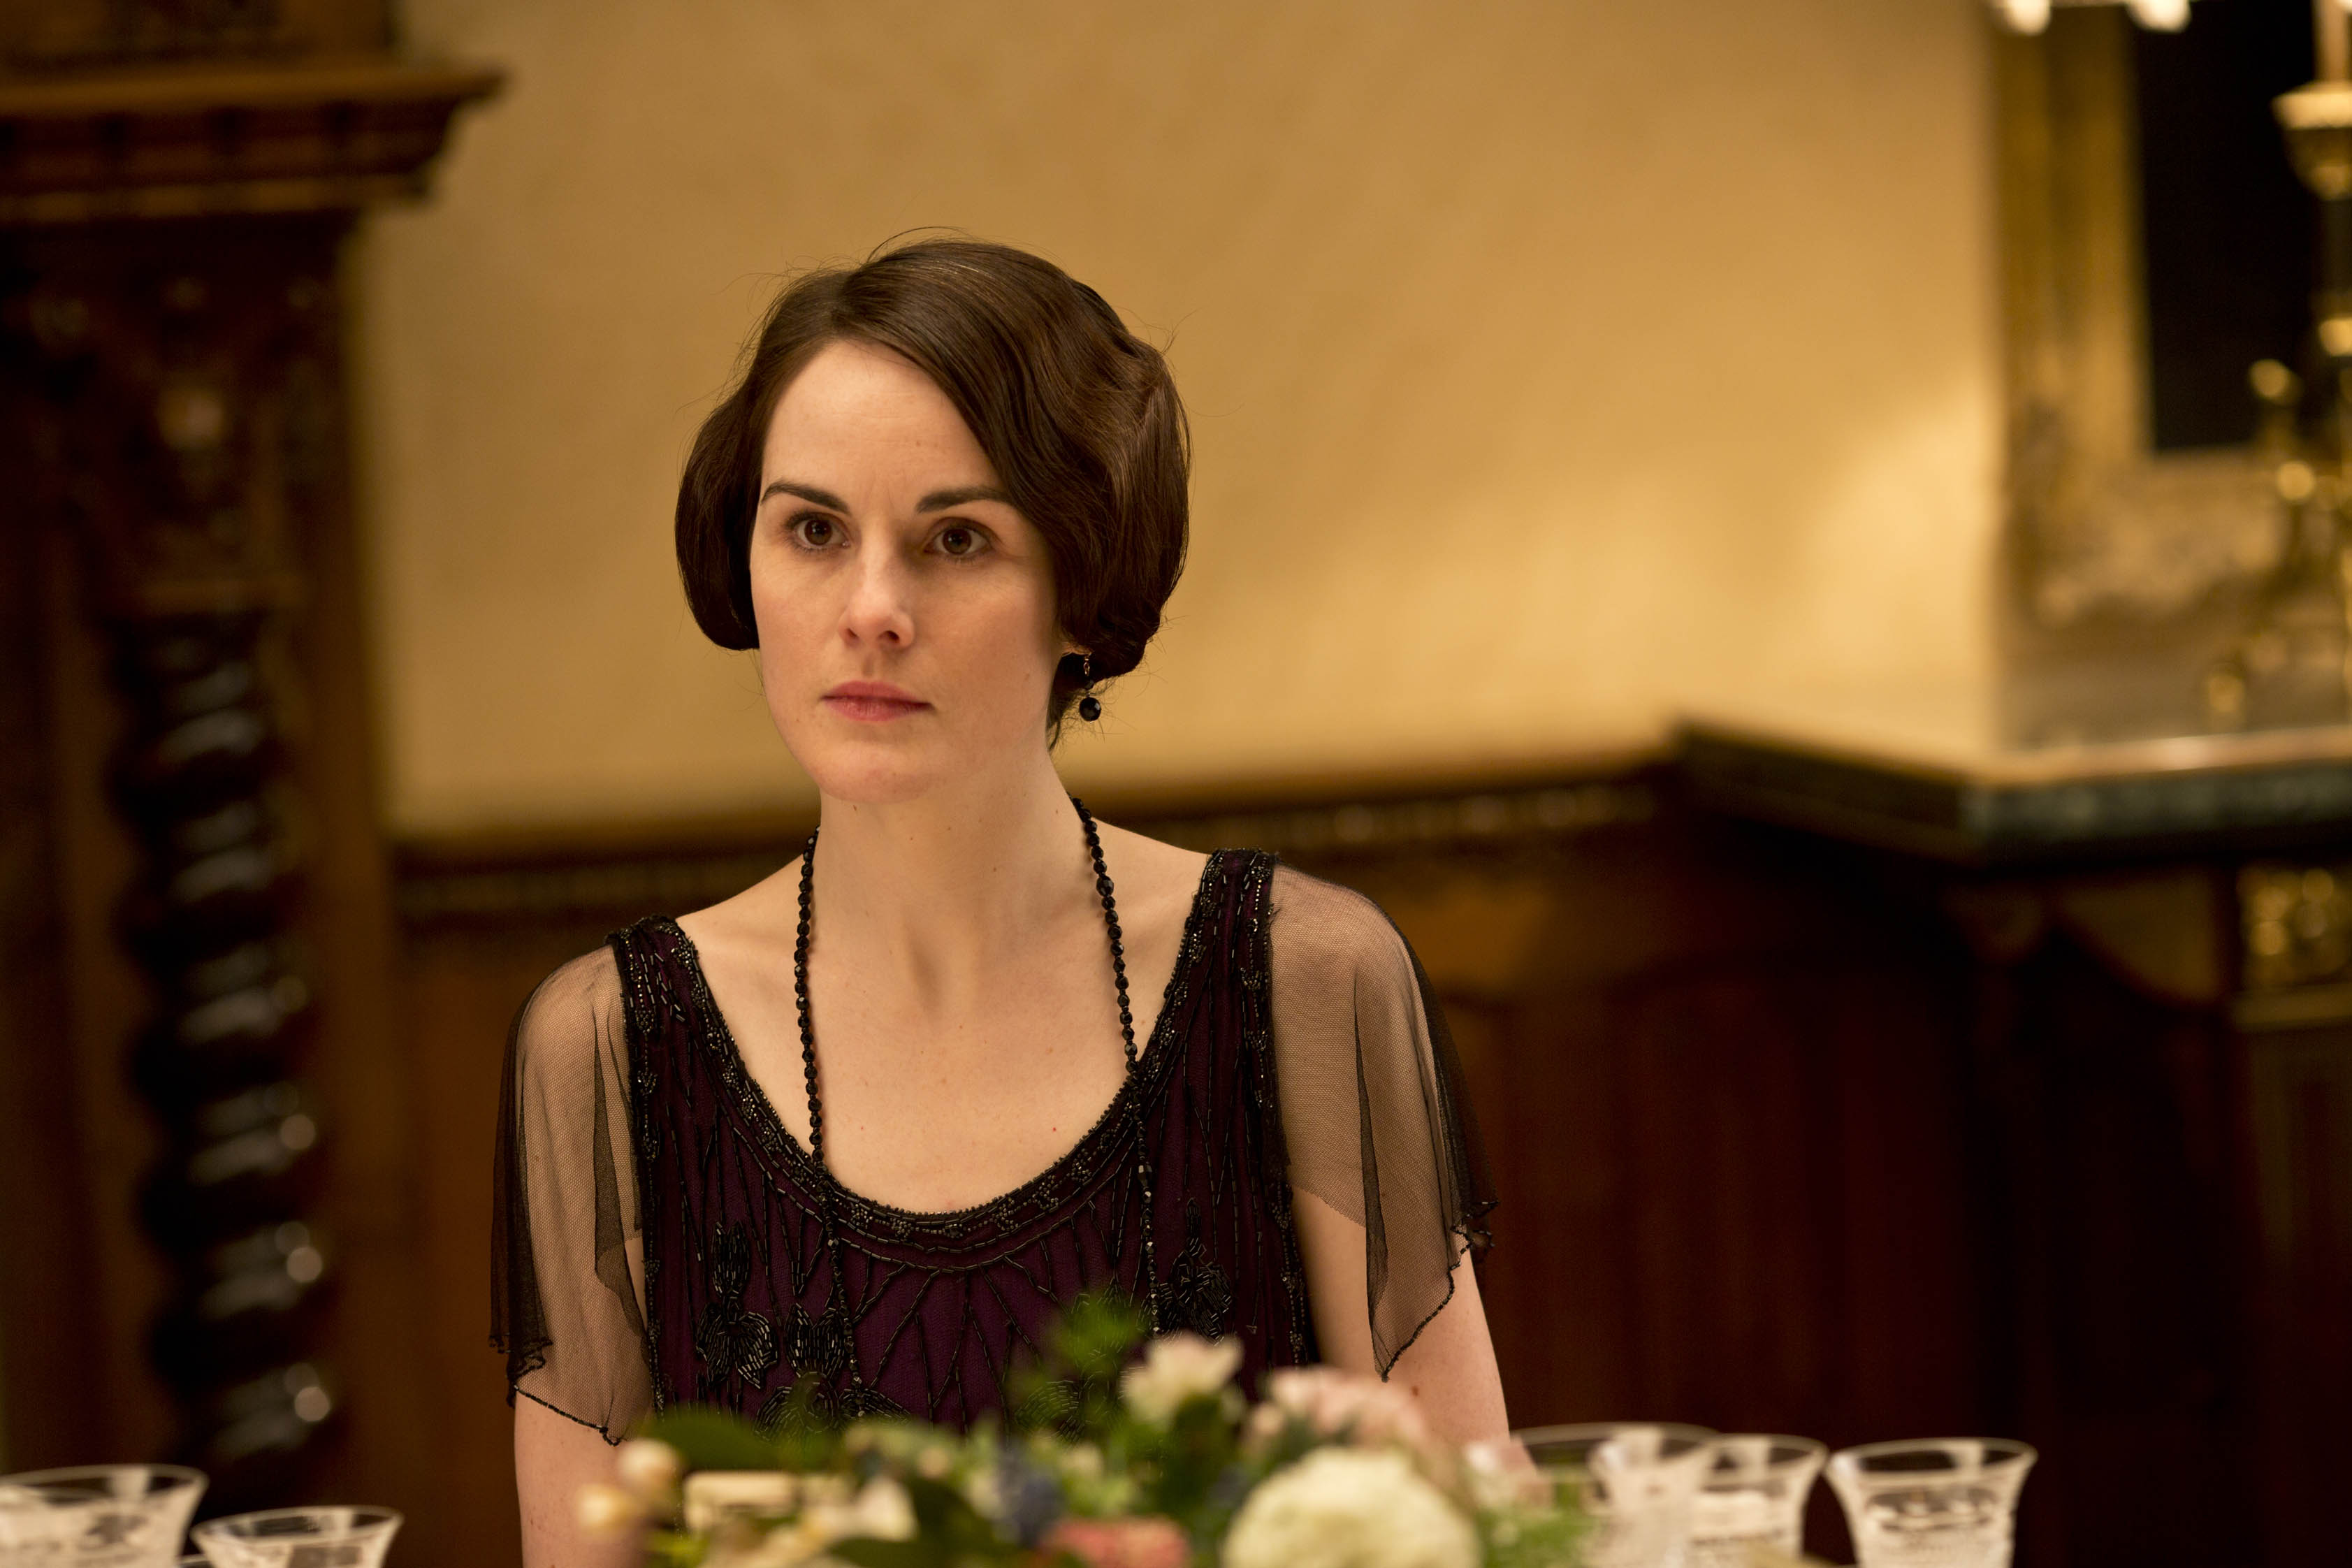 Downton Abbey series 4, episode 2 – Matthew Crawley's message from beyond the grave